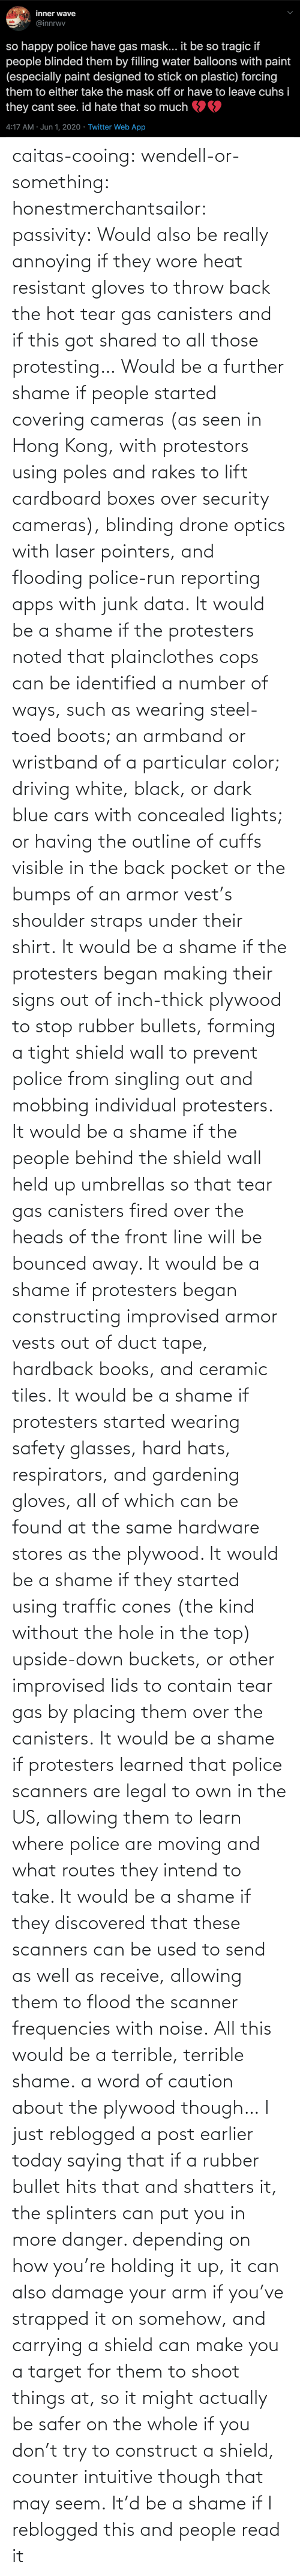 tiles: caitas-cooing:  wendell-or-something: honestmerchantsailor:  passivity: Would also be really annoying if they wore heat resistant gloves to throw back the hot tear gas canisters and if this got shared to all those protesting… Would be a further shame if people started covering cameras (as seen in Hong Kong, with protestors using poles and rakes to lift cardboard boxes over security cameras), blinding drone optics with laser pointers, and flooding police-run reporting apps with junk data. It would be a shame if the protesters noted that plainclothes cops can be identified a number of ways, such as wearing steel-toed boots; an armband or wristband of a particular color; driving white, black, or dark blue cars with concealed lights; or having the outline of cuffs visible in the back pocket or the bumps of an armor vest's shoulder straps under their shirt. It would be a shame if the protesters began making their signs out of inch-thick plywood to stop rubber bullets, forming a tight shield wall to prevent police from singling out and mobbing individual protesters. It would be a shame if the people behind the shield wall held up umbrellas so that tear gas canisters fired over the heads of the front line will be bounced away. It would be a shame if protesters began constructing improvised armor vests out of duct tape, hardback books, and ceramic tiles. It would be a shame if protesters started wearing safety glasses, hard hats, respirators, and gardening gloves, all of which can be found at the same hardware stores as the plywood. It would be a shame if they started using traffic cones (the kind without the hole in the top) upside-down buckets, or other improvised lids to contain tear gas by placing them over the canisters. It would be a shame if protesters learned that police scanners are legal to own in the US, allowing them to learn where police are moving and what routes they intend to take. It would be a shame if they discovered that these scanners can be used to send as well as receive, allowing them to flood the scanner frequencies with noise. All this would be a terrible, terrible shame.    a word of caution about the plywood though… I just reblogged a post earlier today saying that if a rubber bullet hits that and shatters it, the splinters can put you in more danger. depending on how you're holding it up, it can also damage your arm if you've strapped it on somehow, and carrying a shield can make you a target for them to shoot things at, so it might actually be safer on the whole if you don't try to construct a shield, counter intuitive though that may seem.    It'd be a shame if I reblogged this and people read it